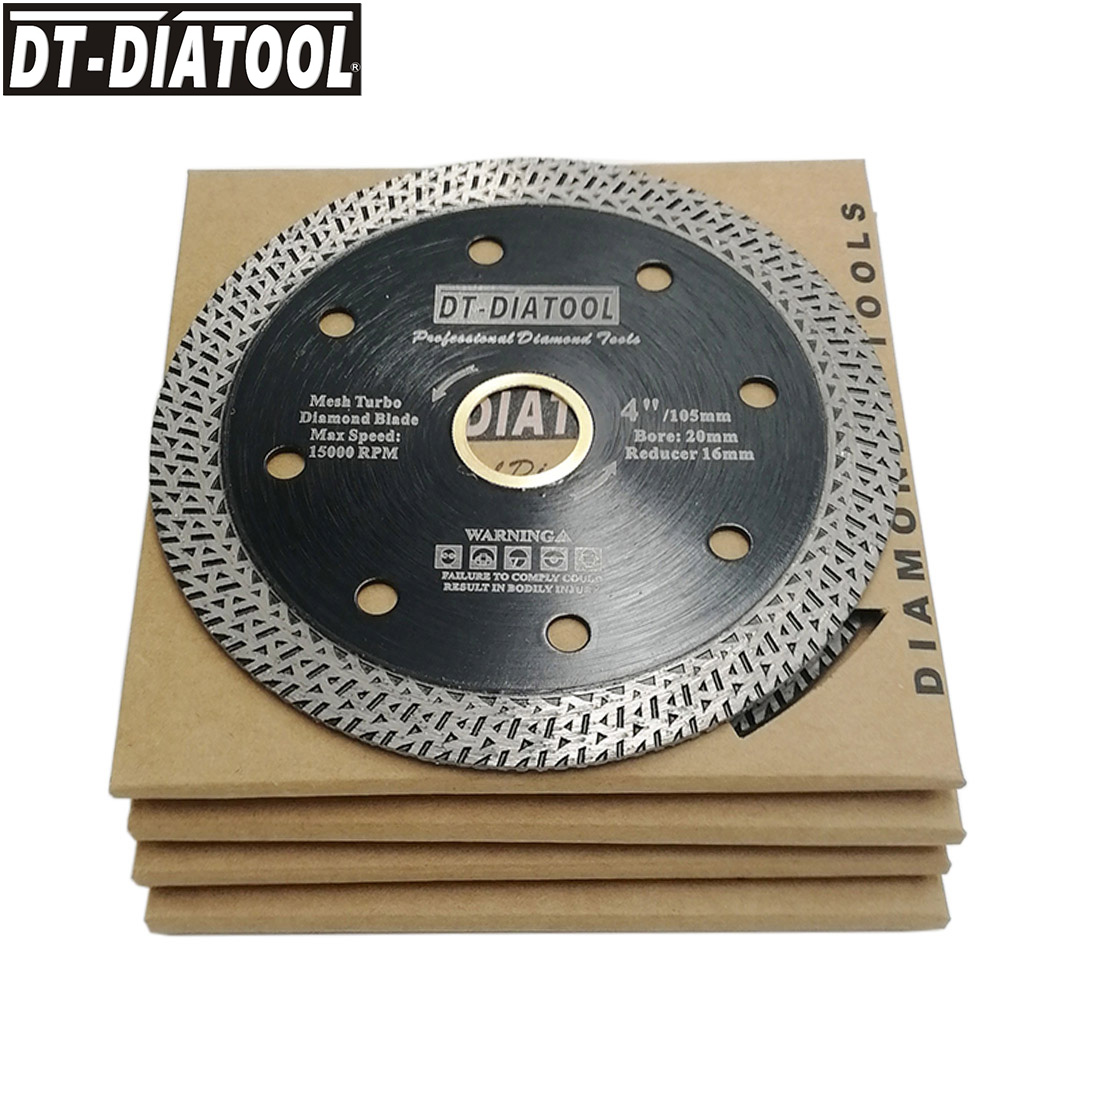 DT-DIATOOL 5pcs/set  4 4.5 or 5inch Hot pressed Cutting Disc Diamond Wheel Mesh Turbo Saw blades for Tile Marble